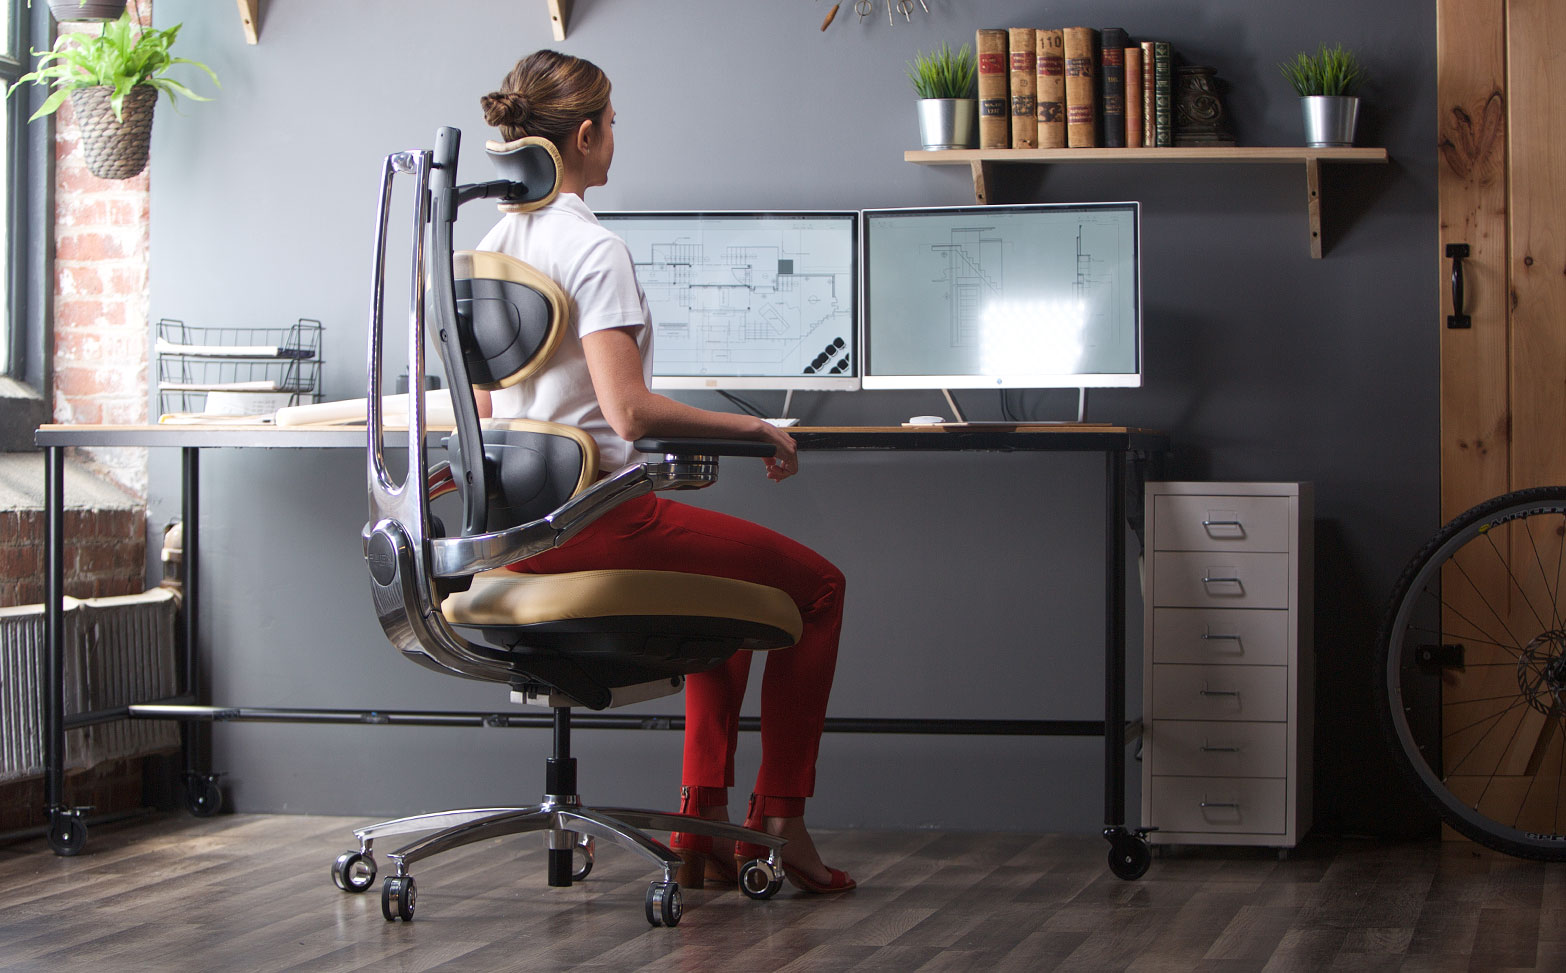 Muuv 174 By Align1 Solutions Sit Smarter Work Better